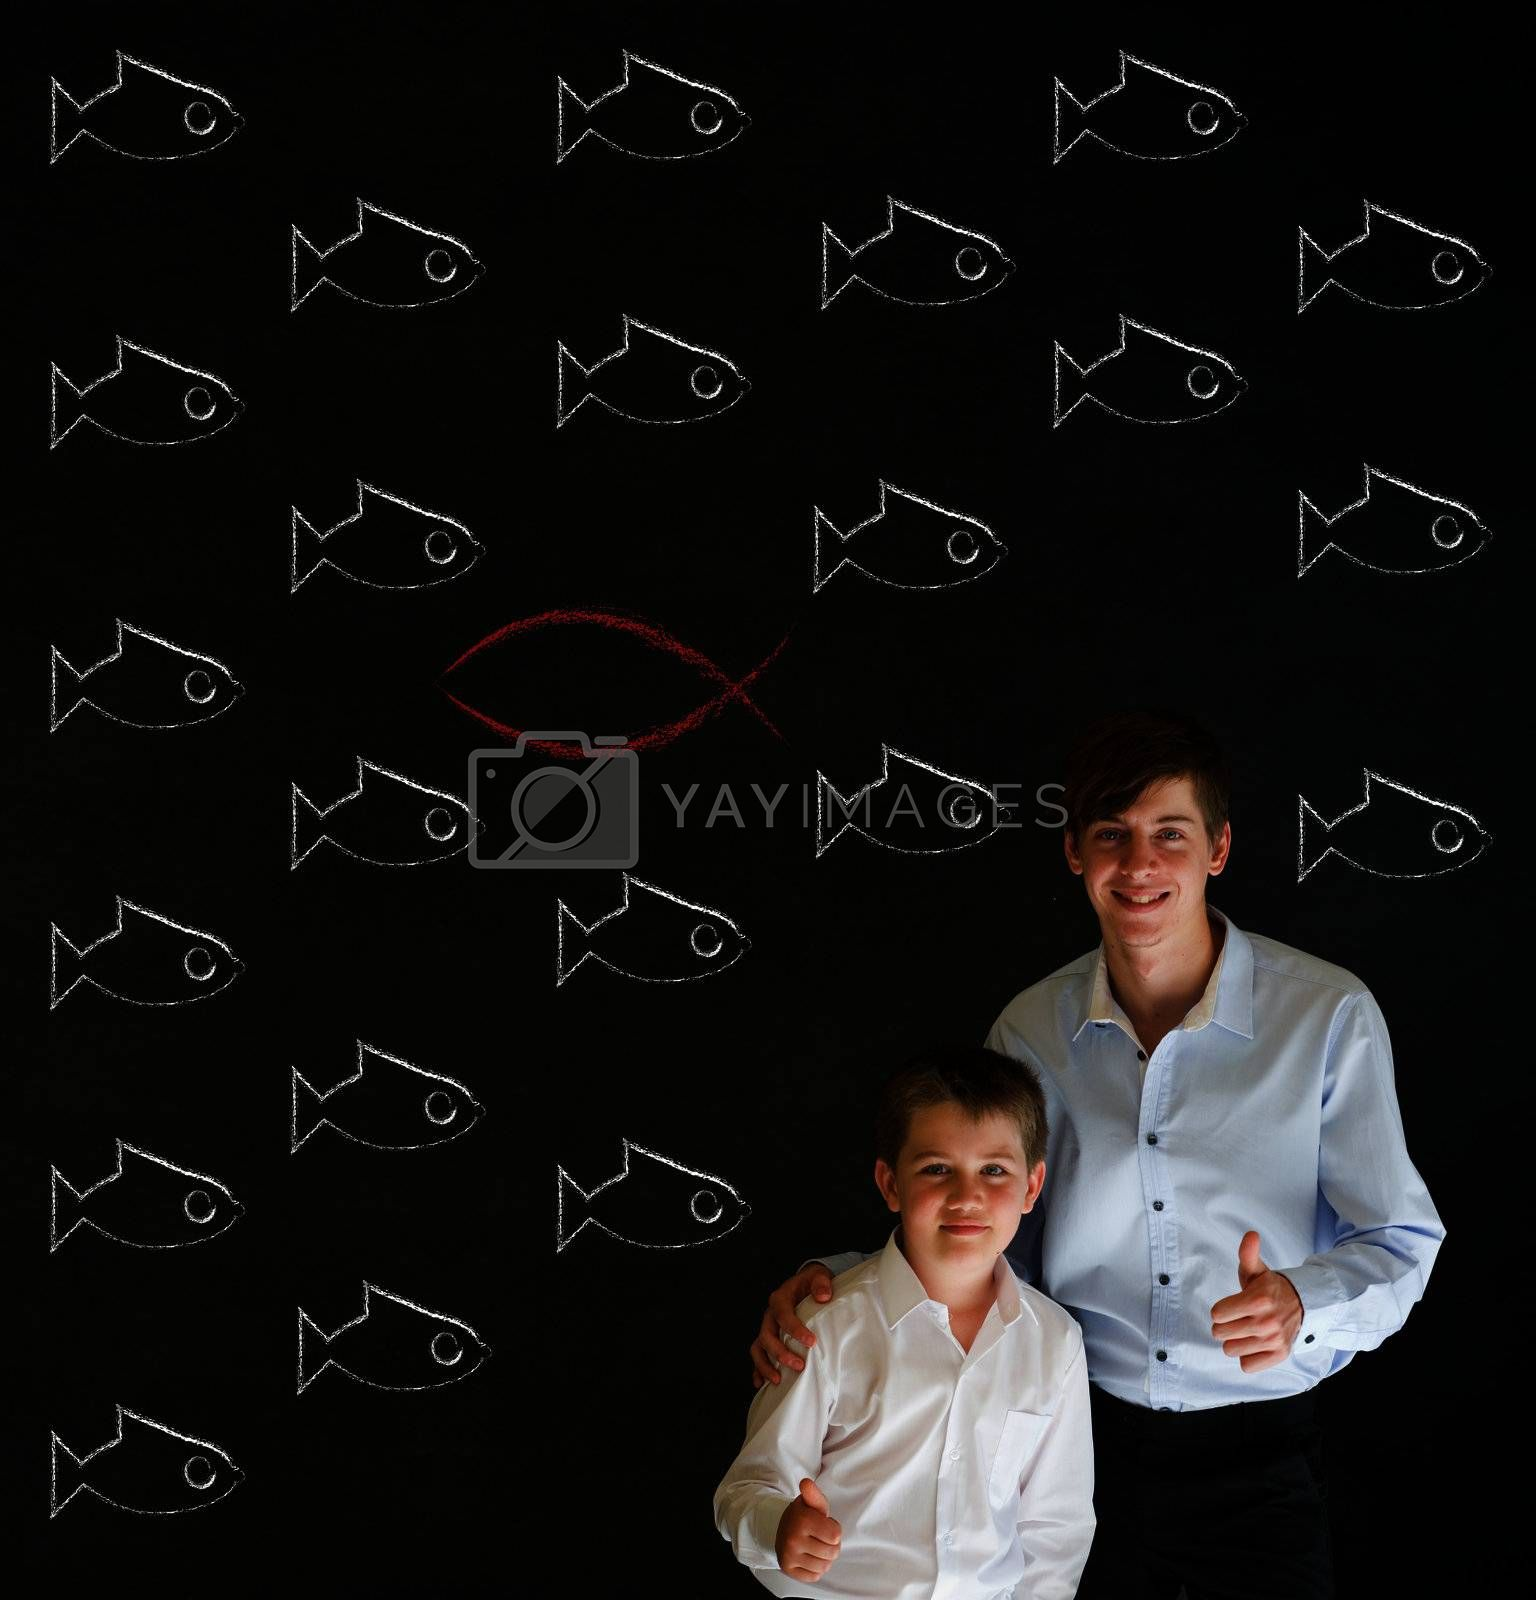 Thumbs up boy dressed up as business man with teacher man and independent thinking Jesus, God, Christianity fish on blackboard background